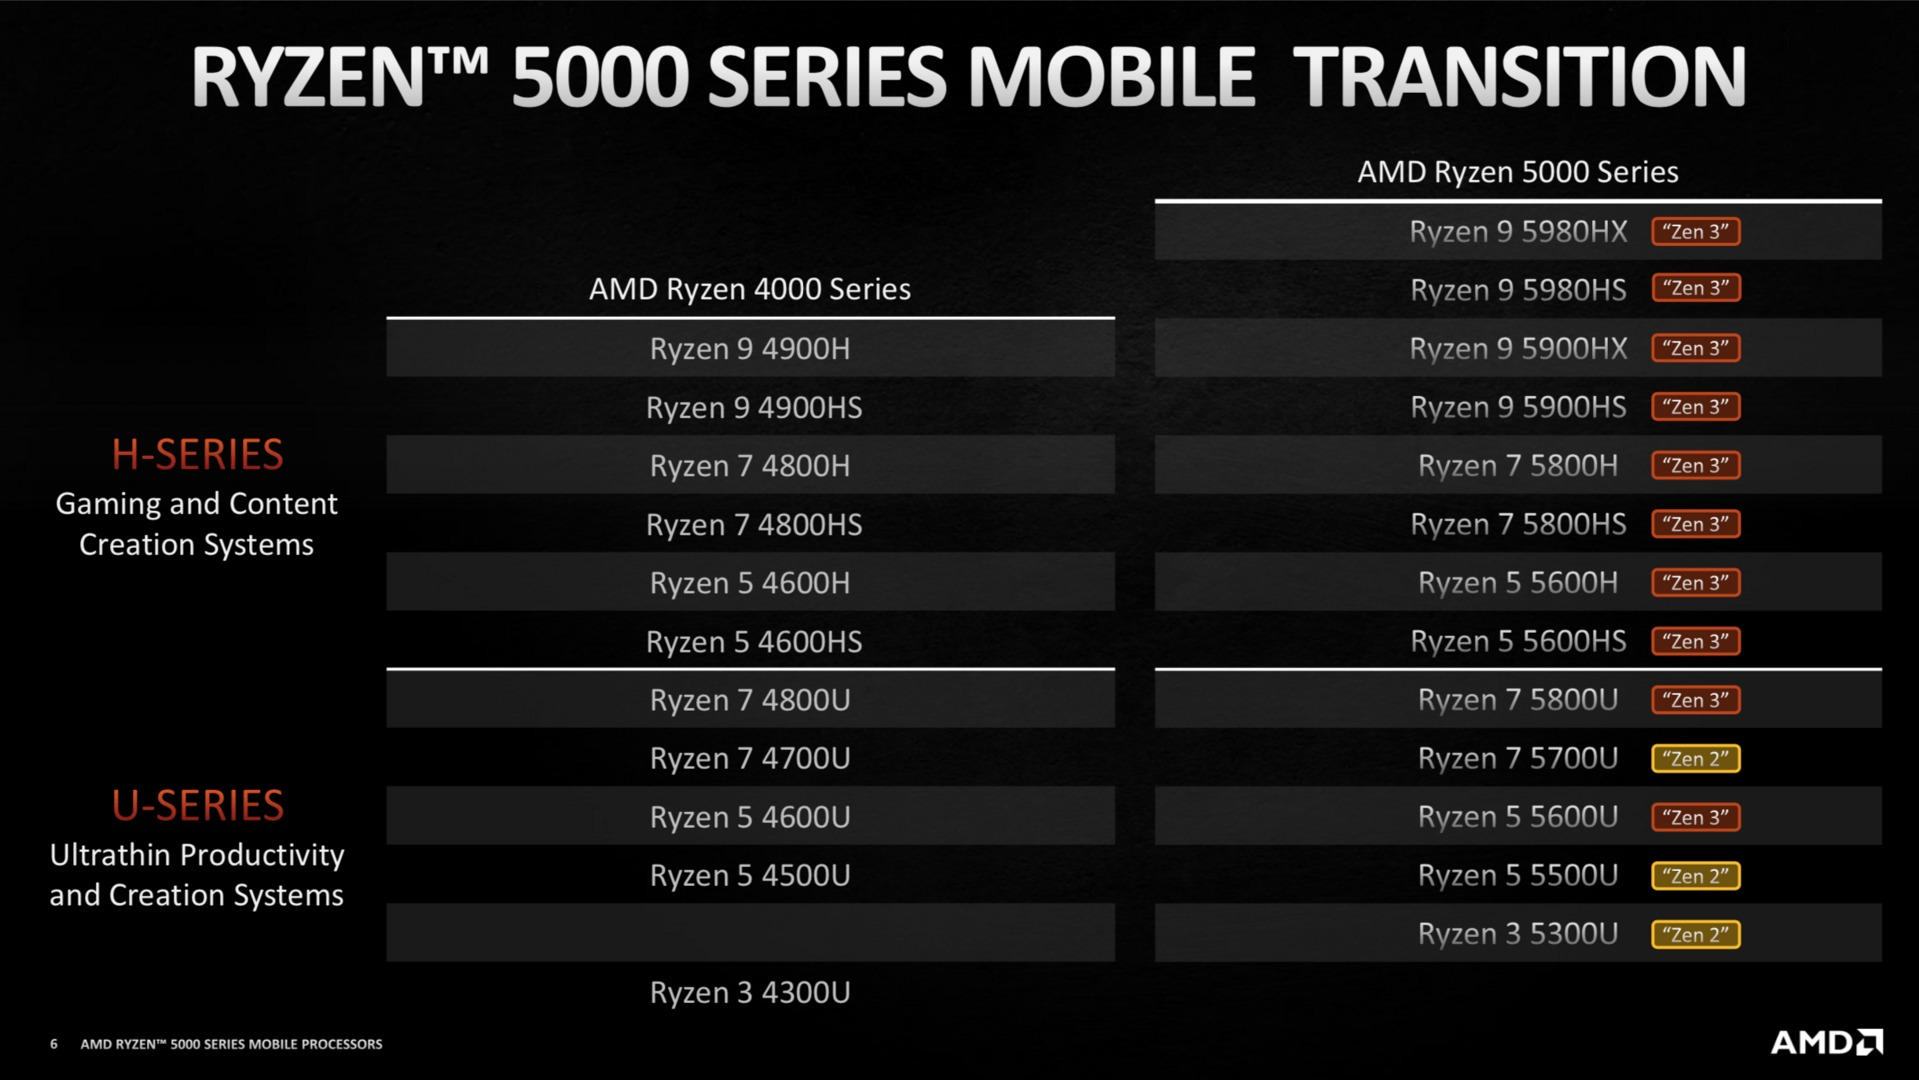 Ryzen 5000 Mobile and Ryzen 5000HX